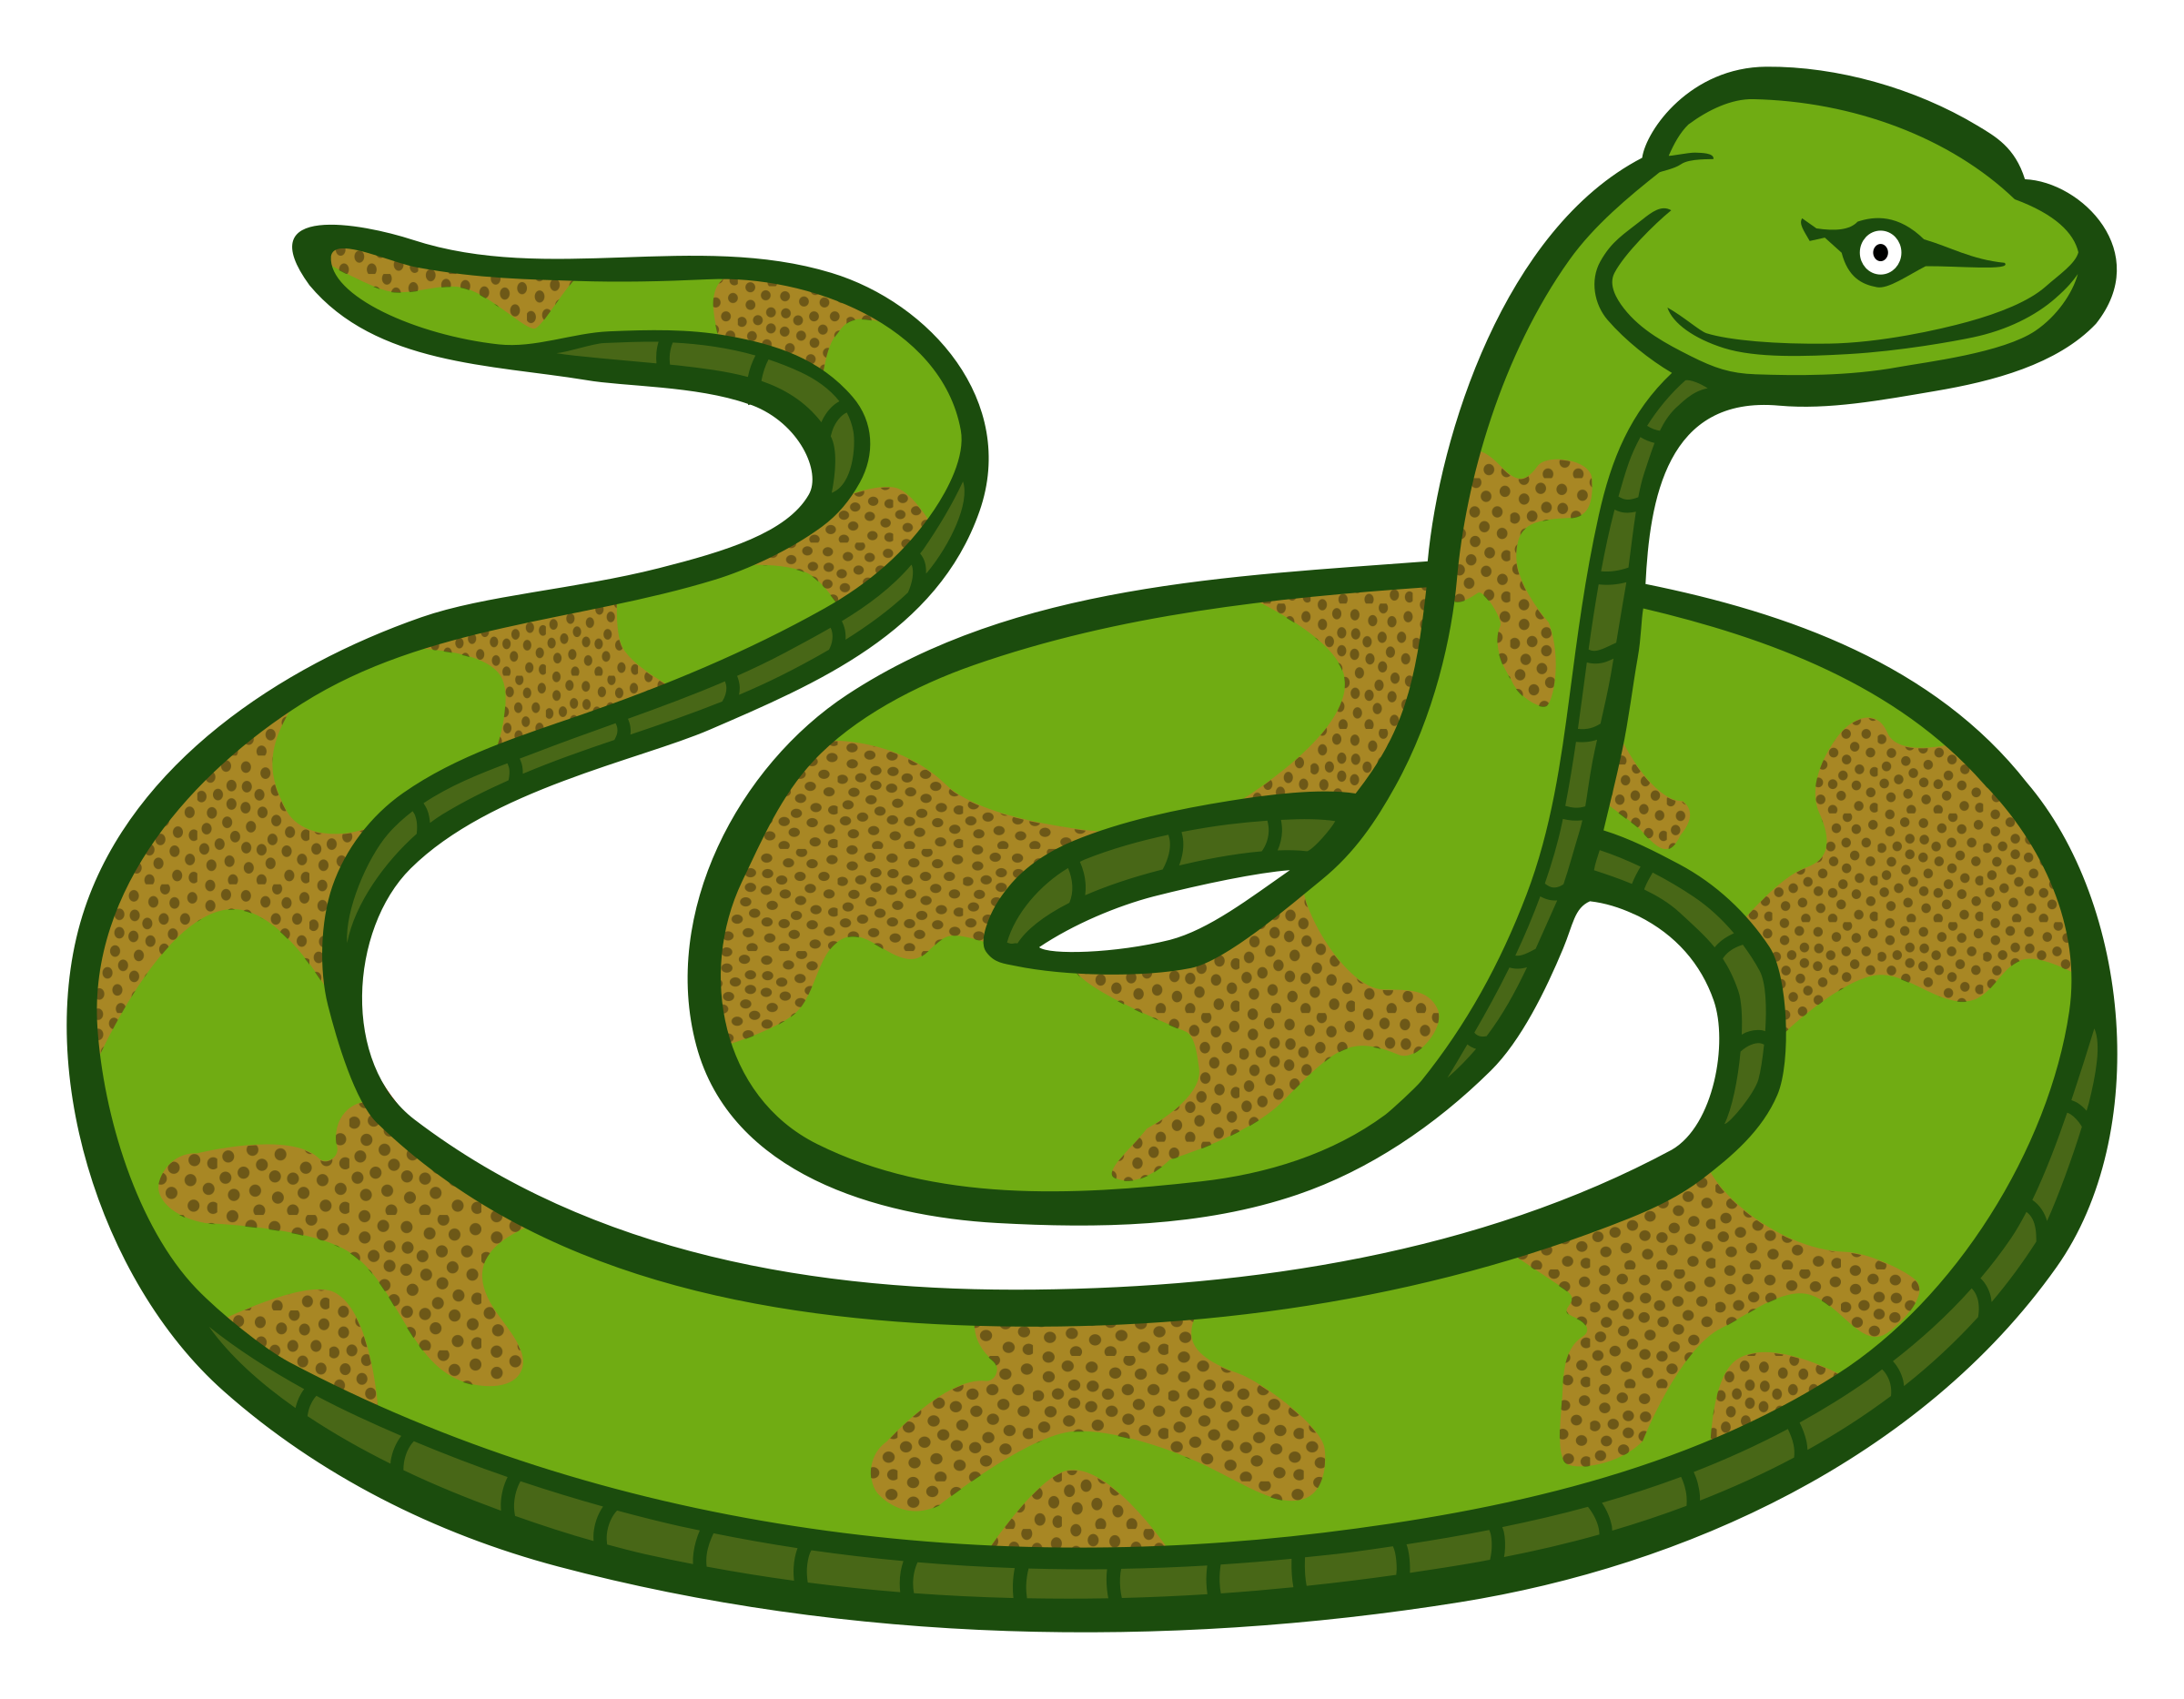 Transparent snake clipart 2-Transparent snake clipart 2-8